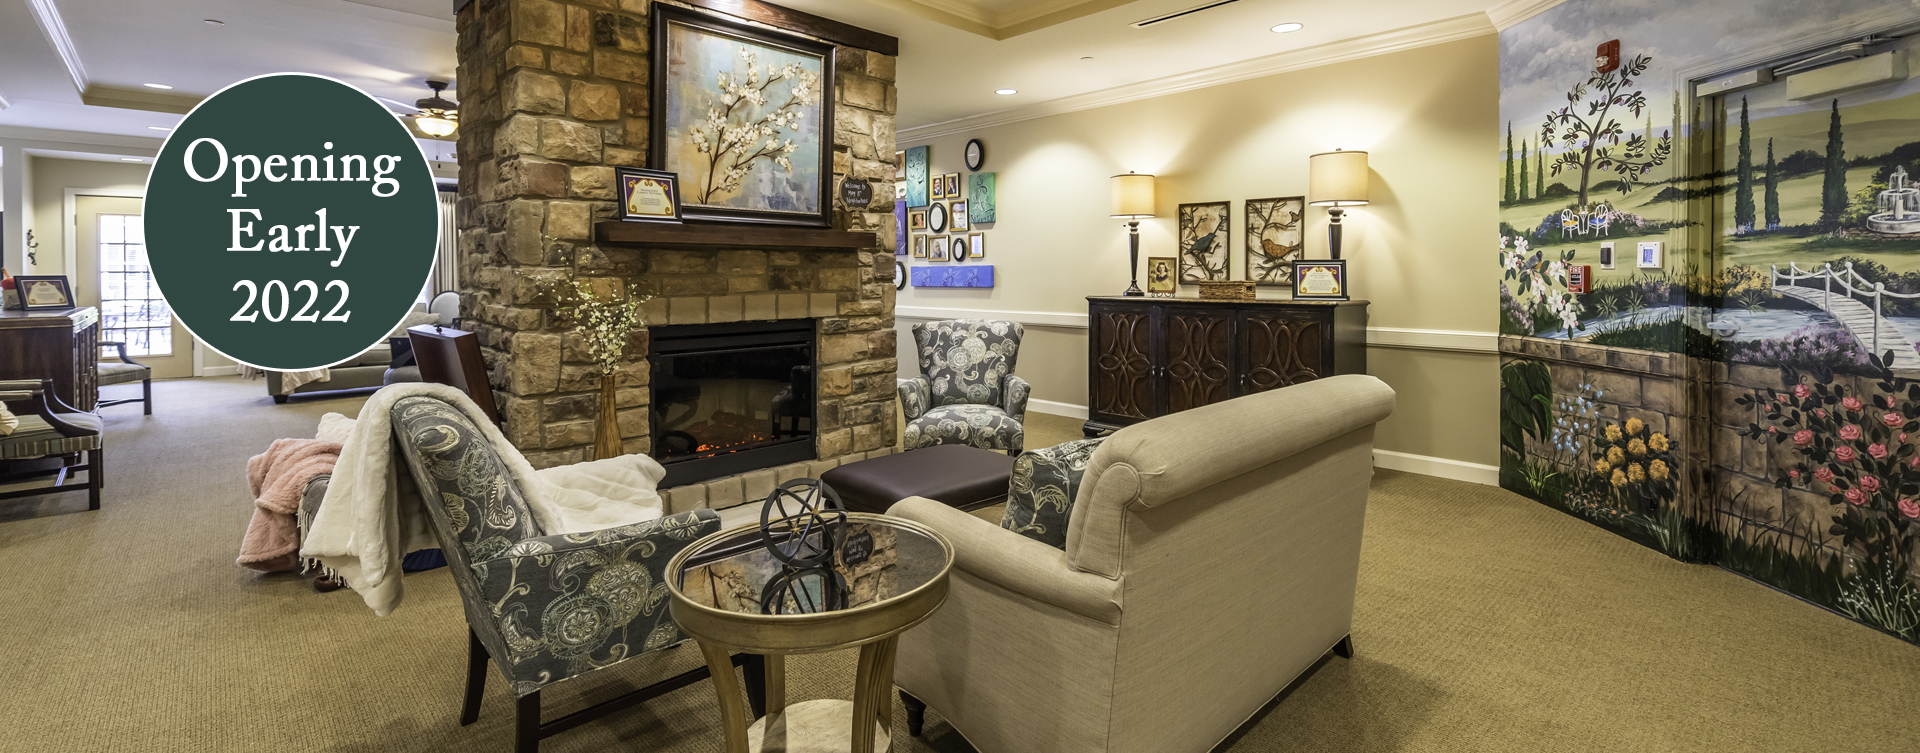 Chairs and sofas sit higher and are easier to get in and out of in the Mary B's living room at Bickford of Chesapeake